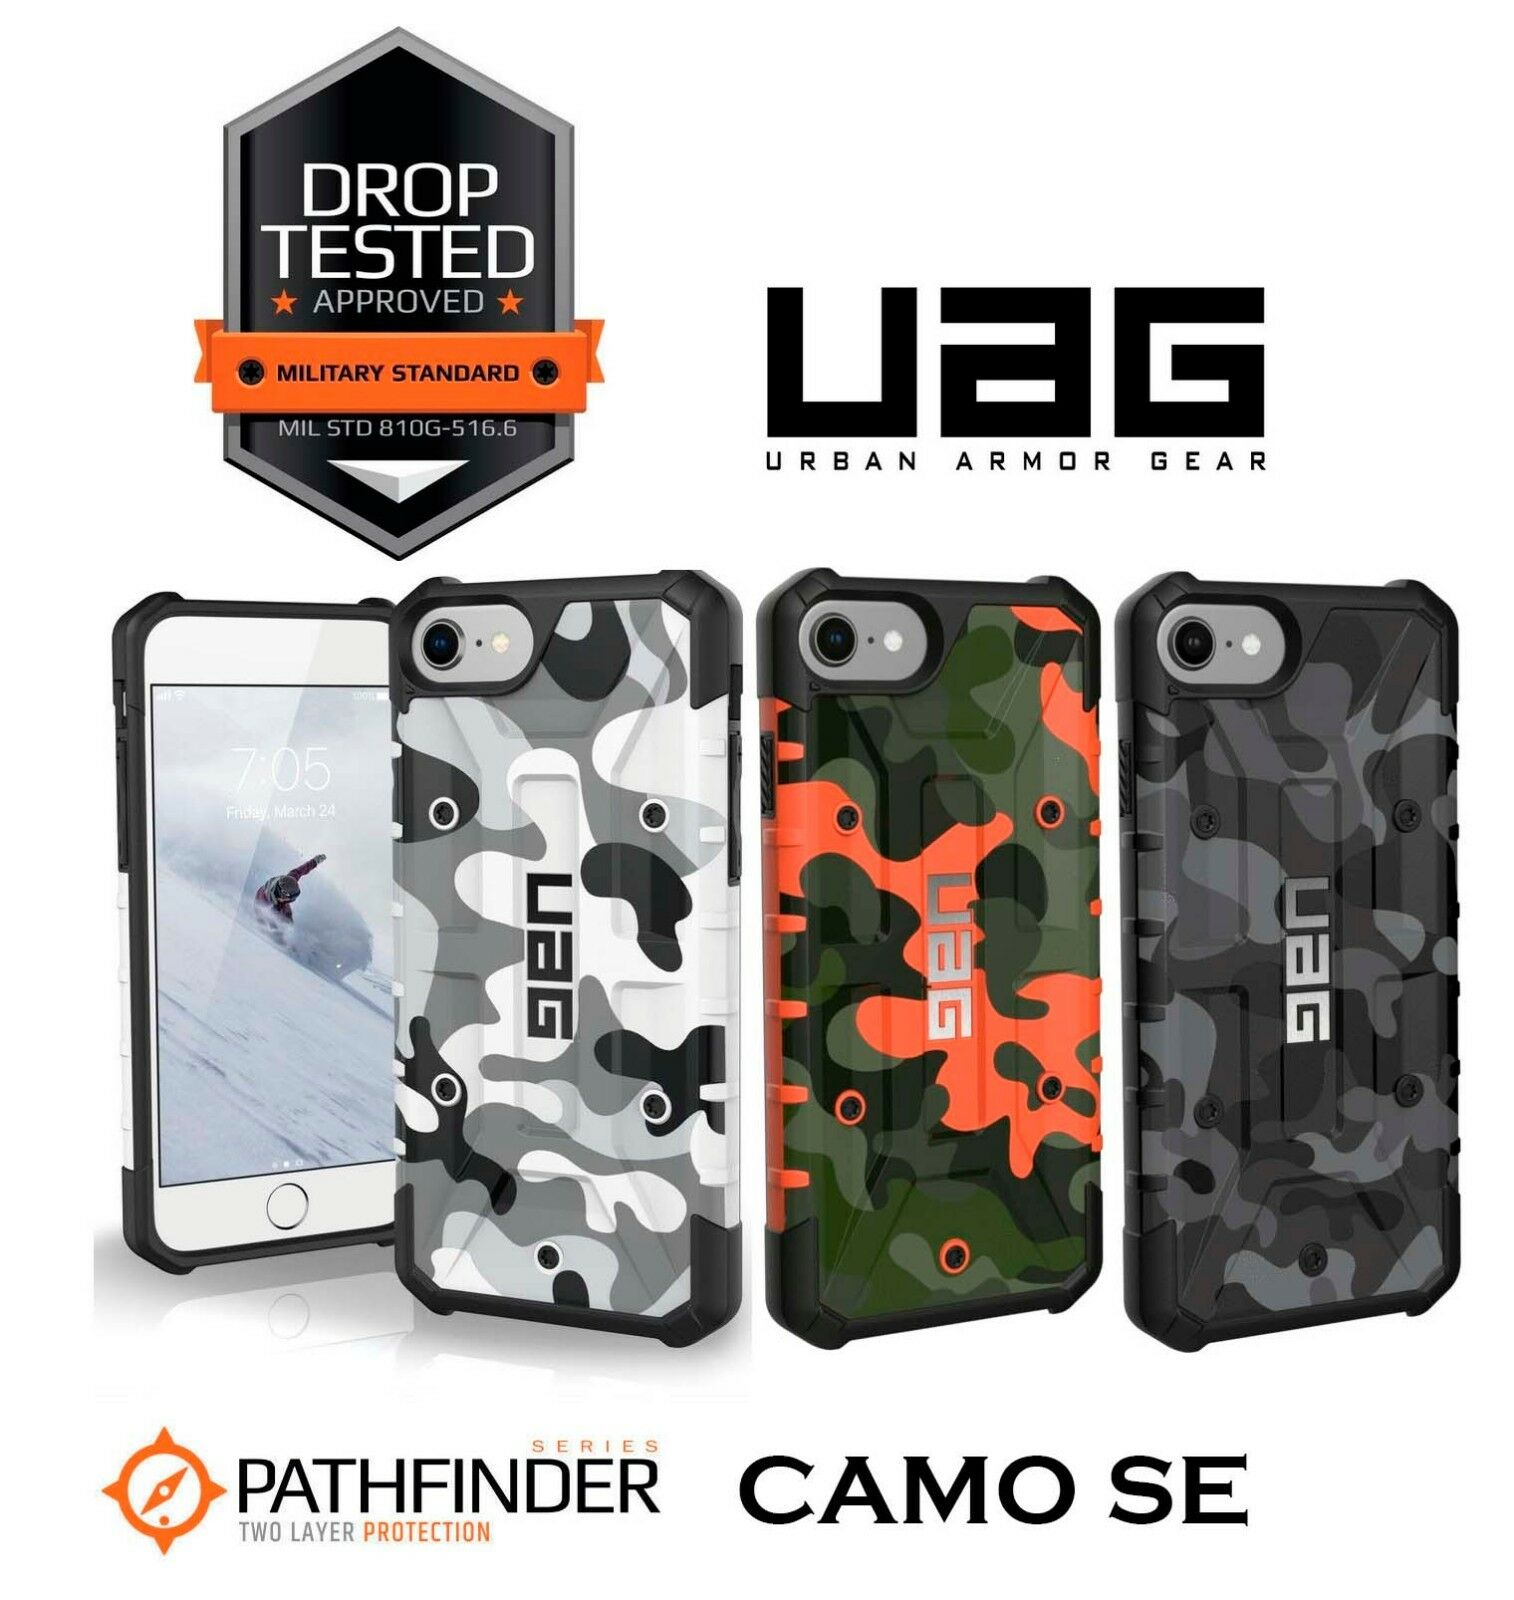 finest selection 5d211 b4d2f Details about UAG Pathfinder Camo SE Limited Edition Apple iPhone 8 / 7 /  6S / 6 Rugged Cover